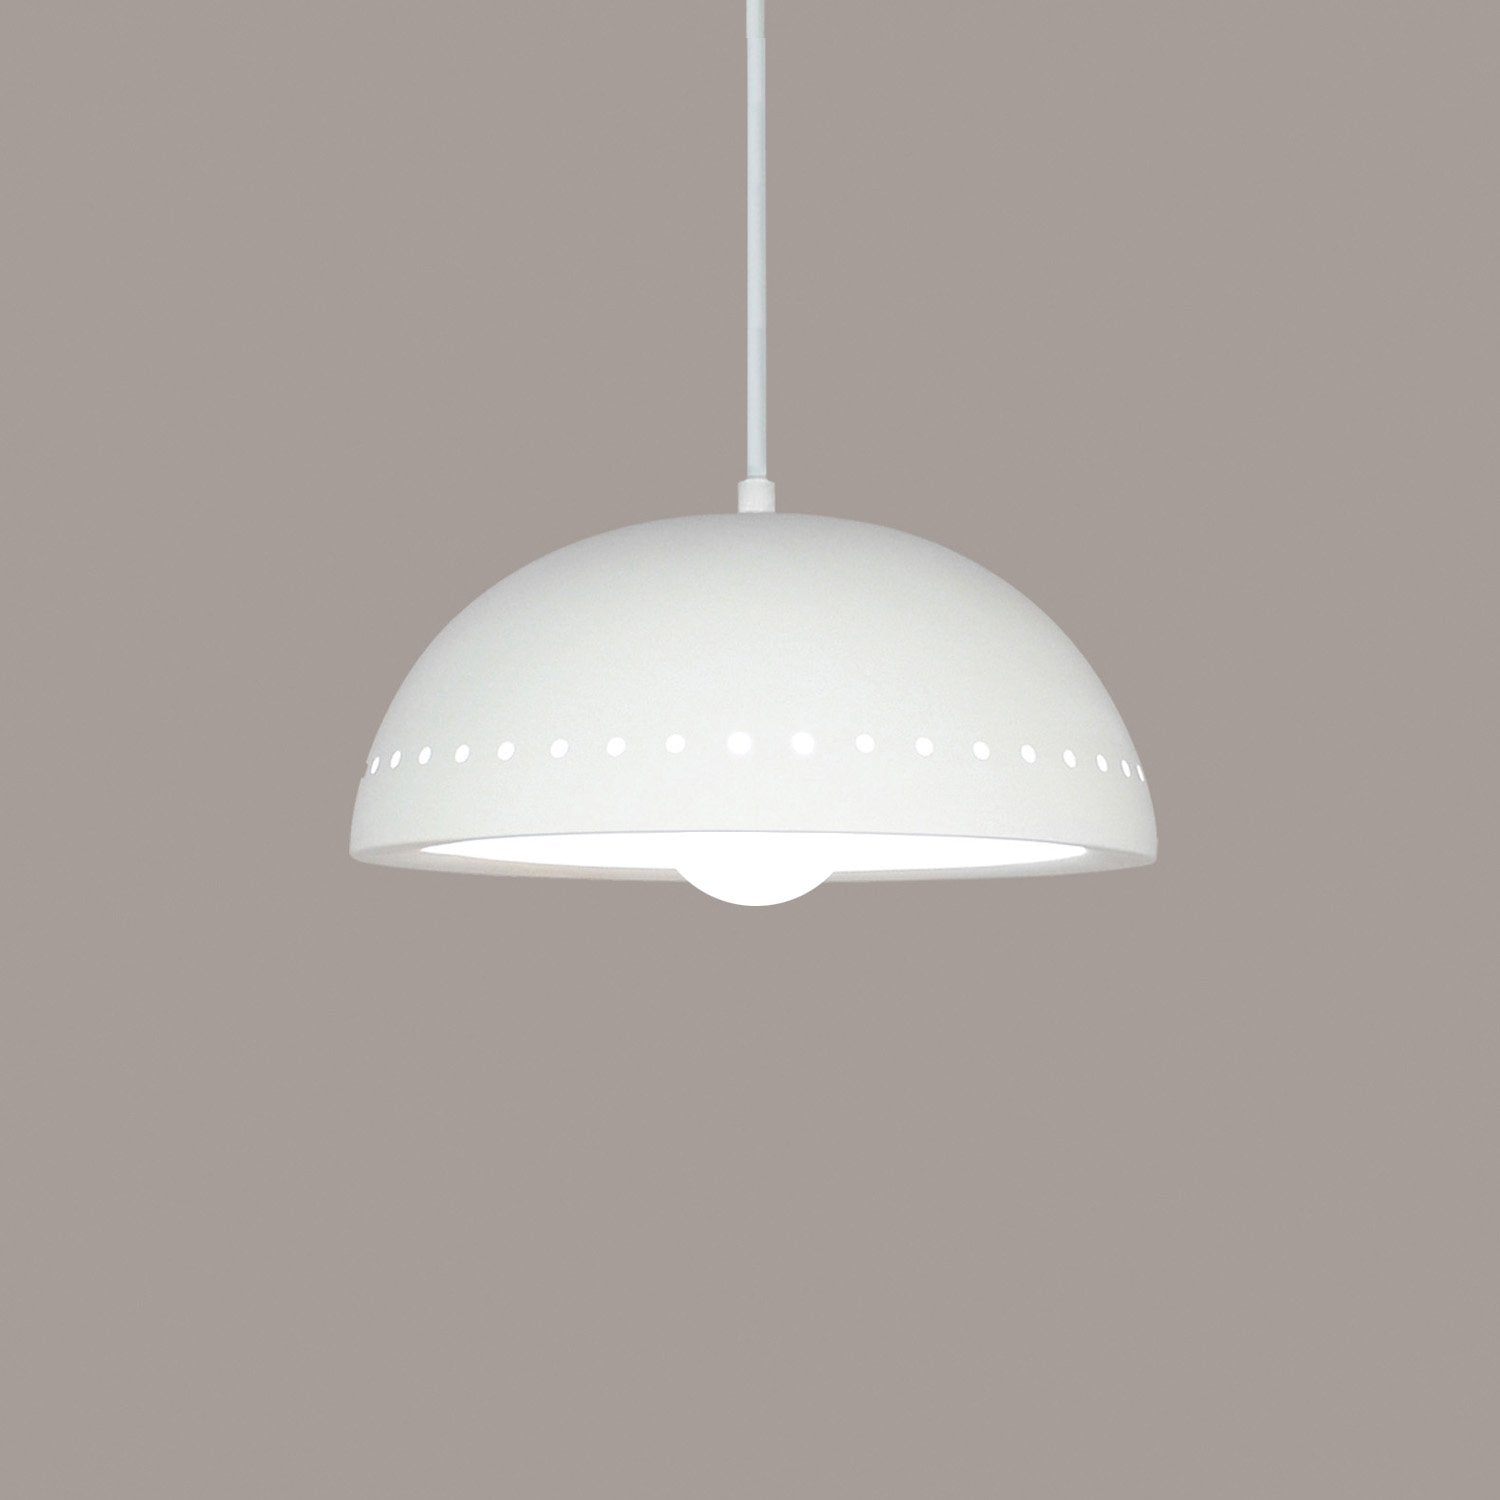 A19 P305-LEDGU24-WC-BCC Islands of Light Collection Cyprus White Crackle Finish Pendant